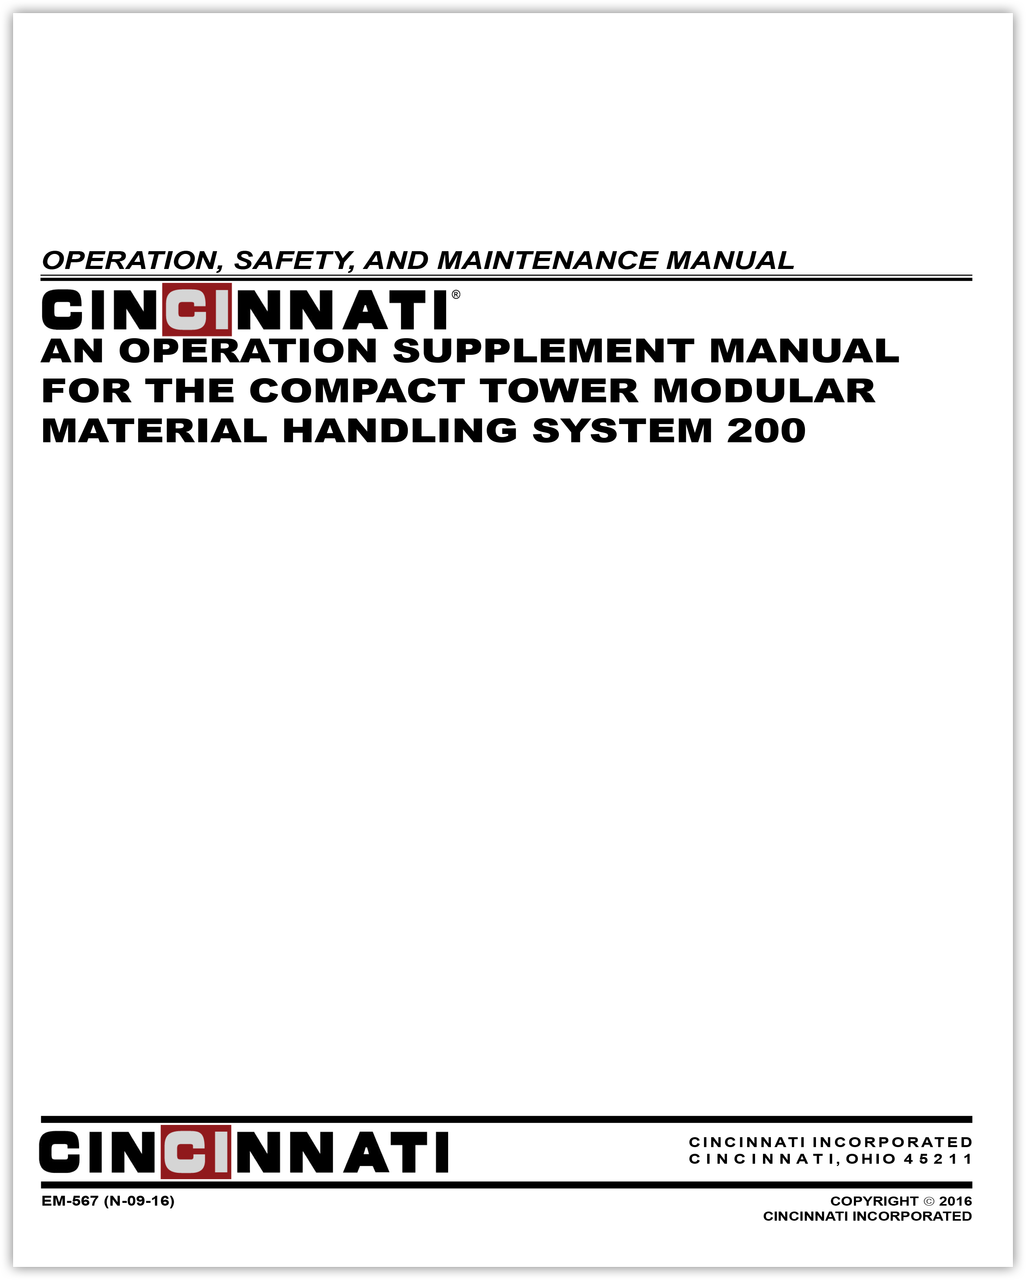 EM-567 (N-09-16) MMHS 200 Compact Tower Operation Supplement